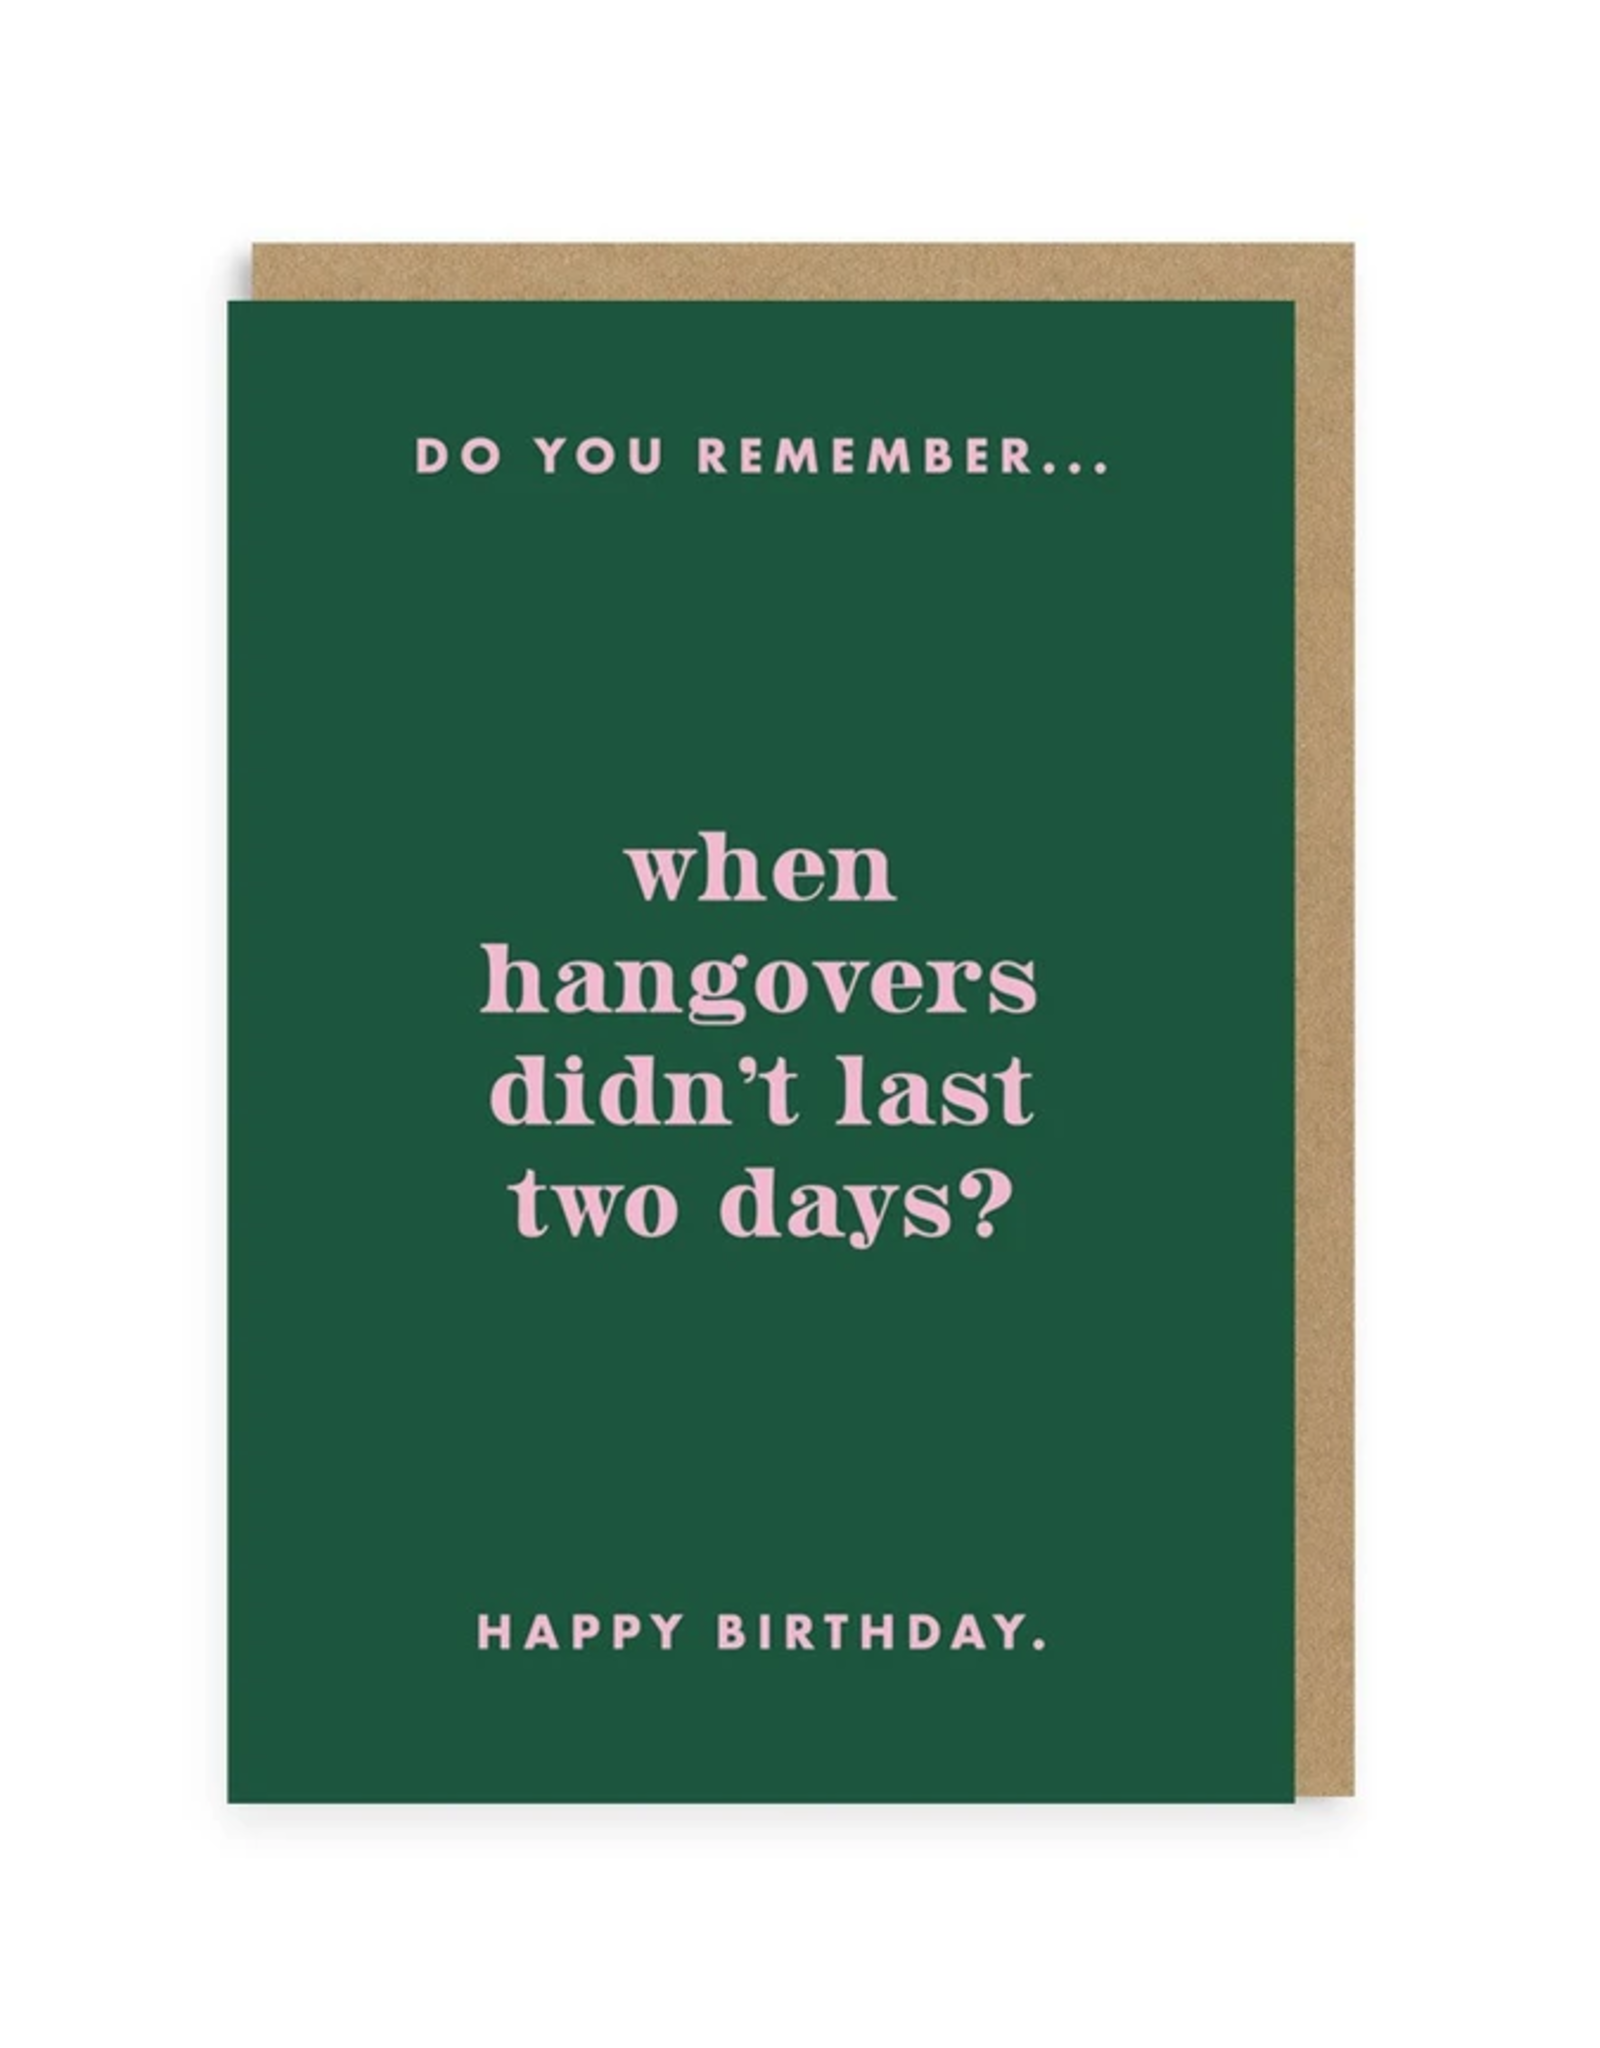 Do You Remember When Hangovers... Greeting Card